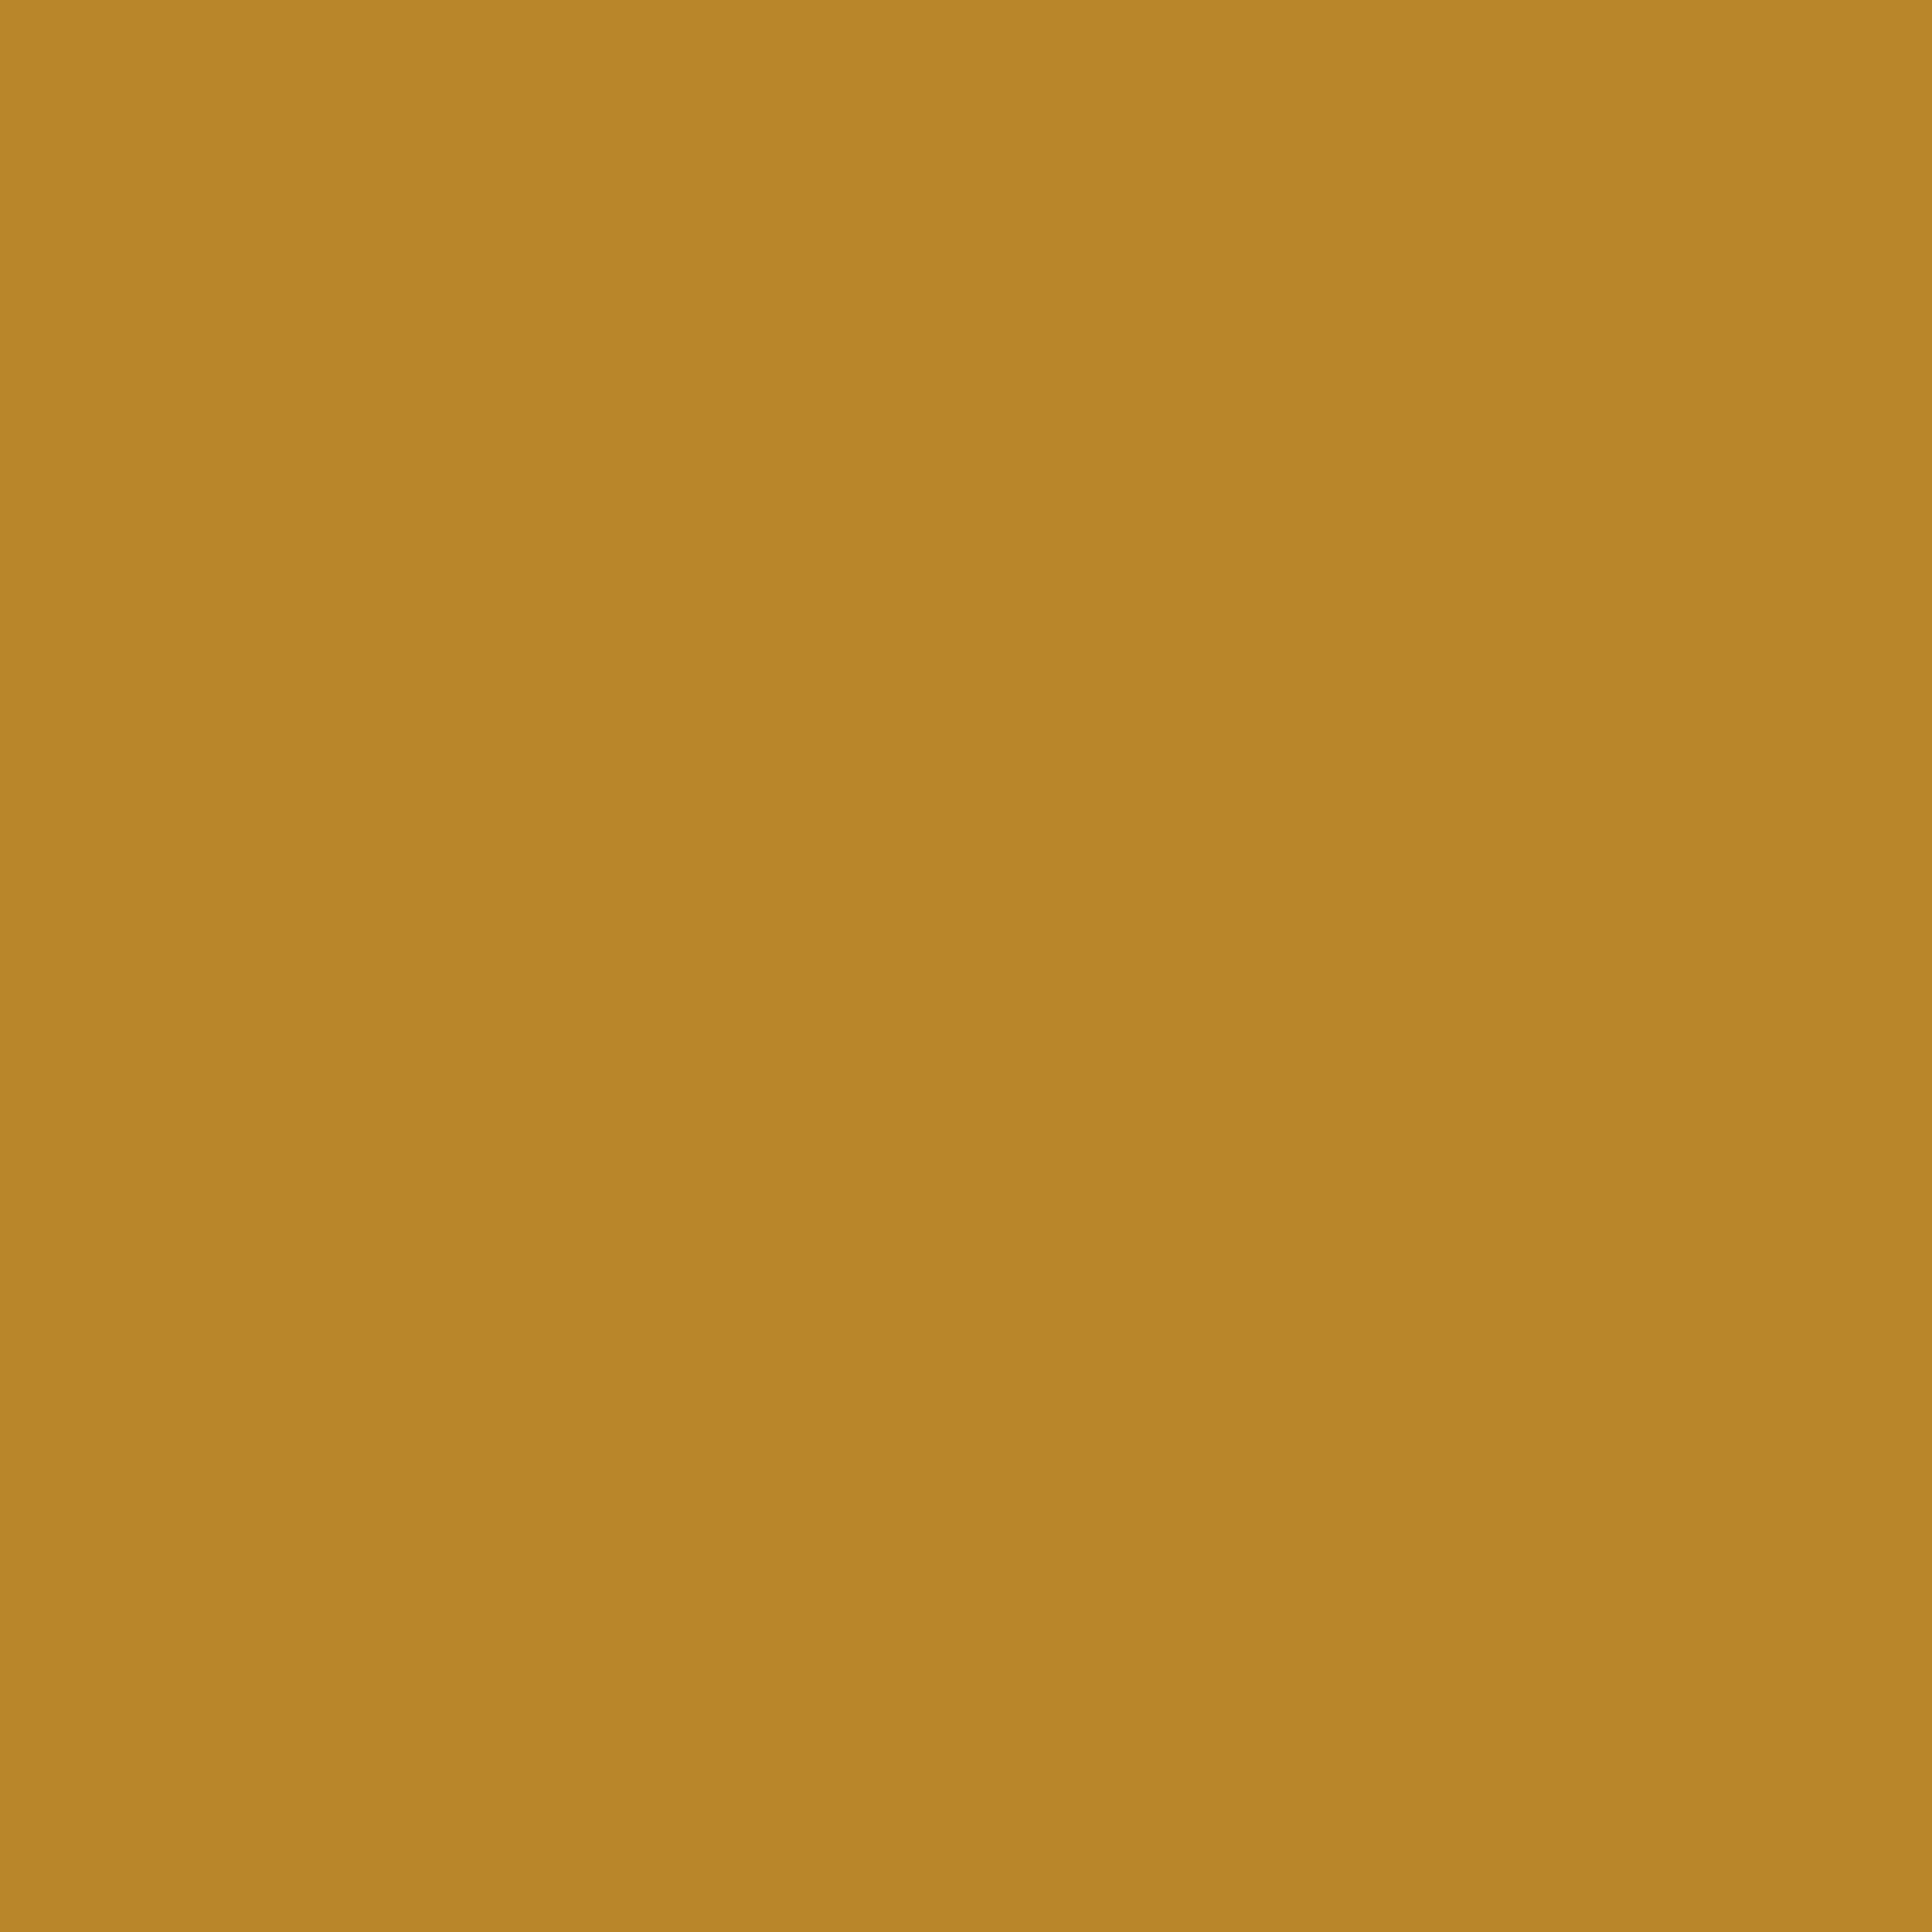 2732x2732 University Of California Gold Solid Color Background